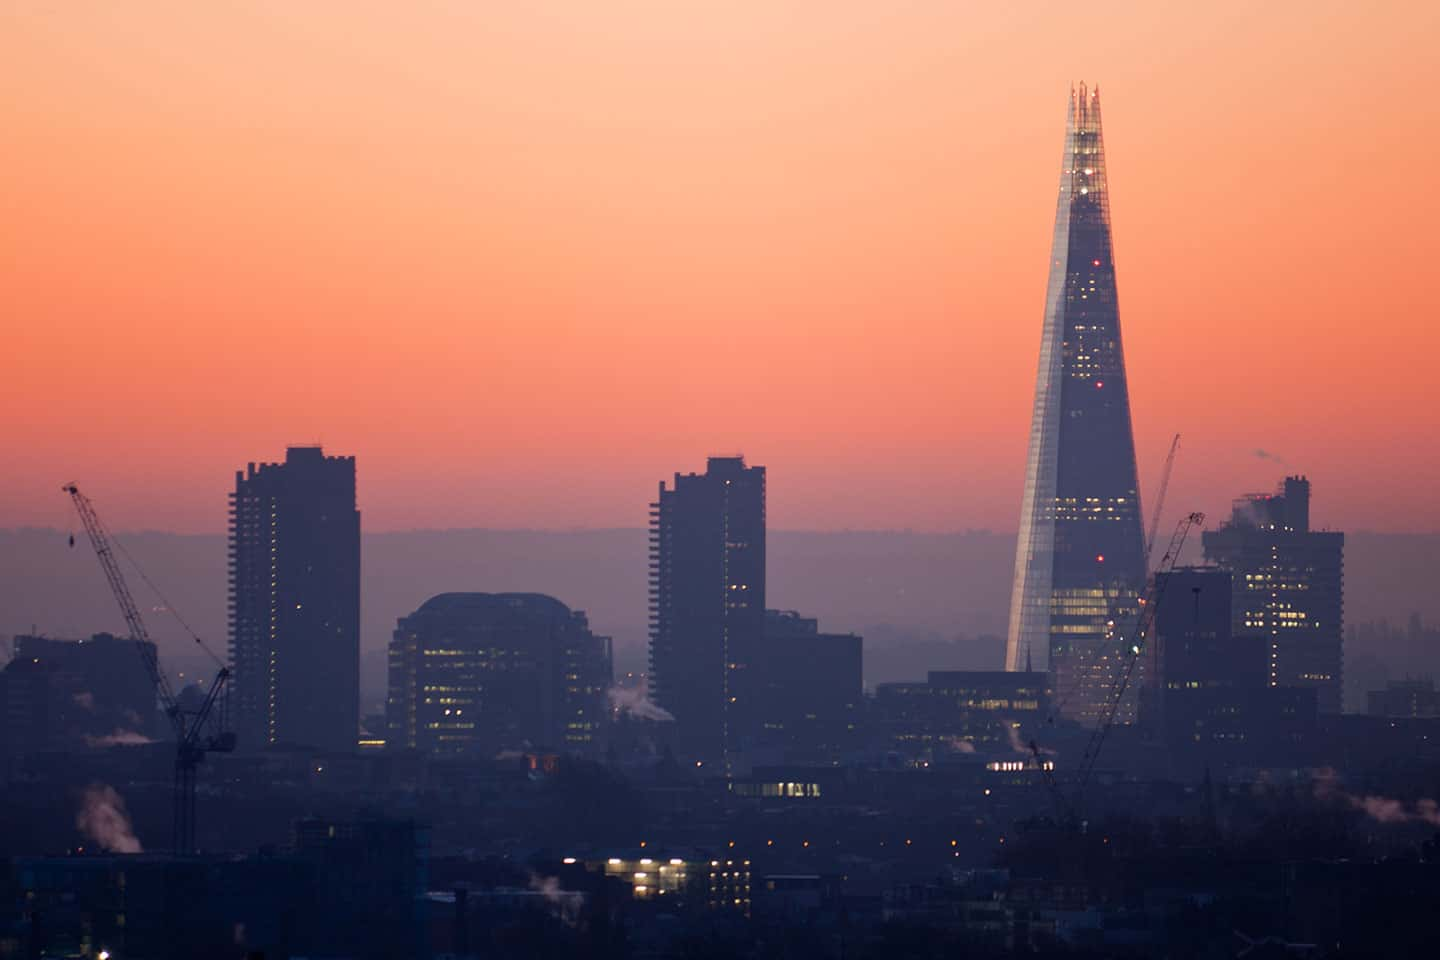 Image of the Shard skyscraper in London at dawn